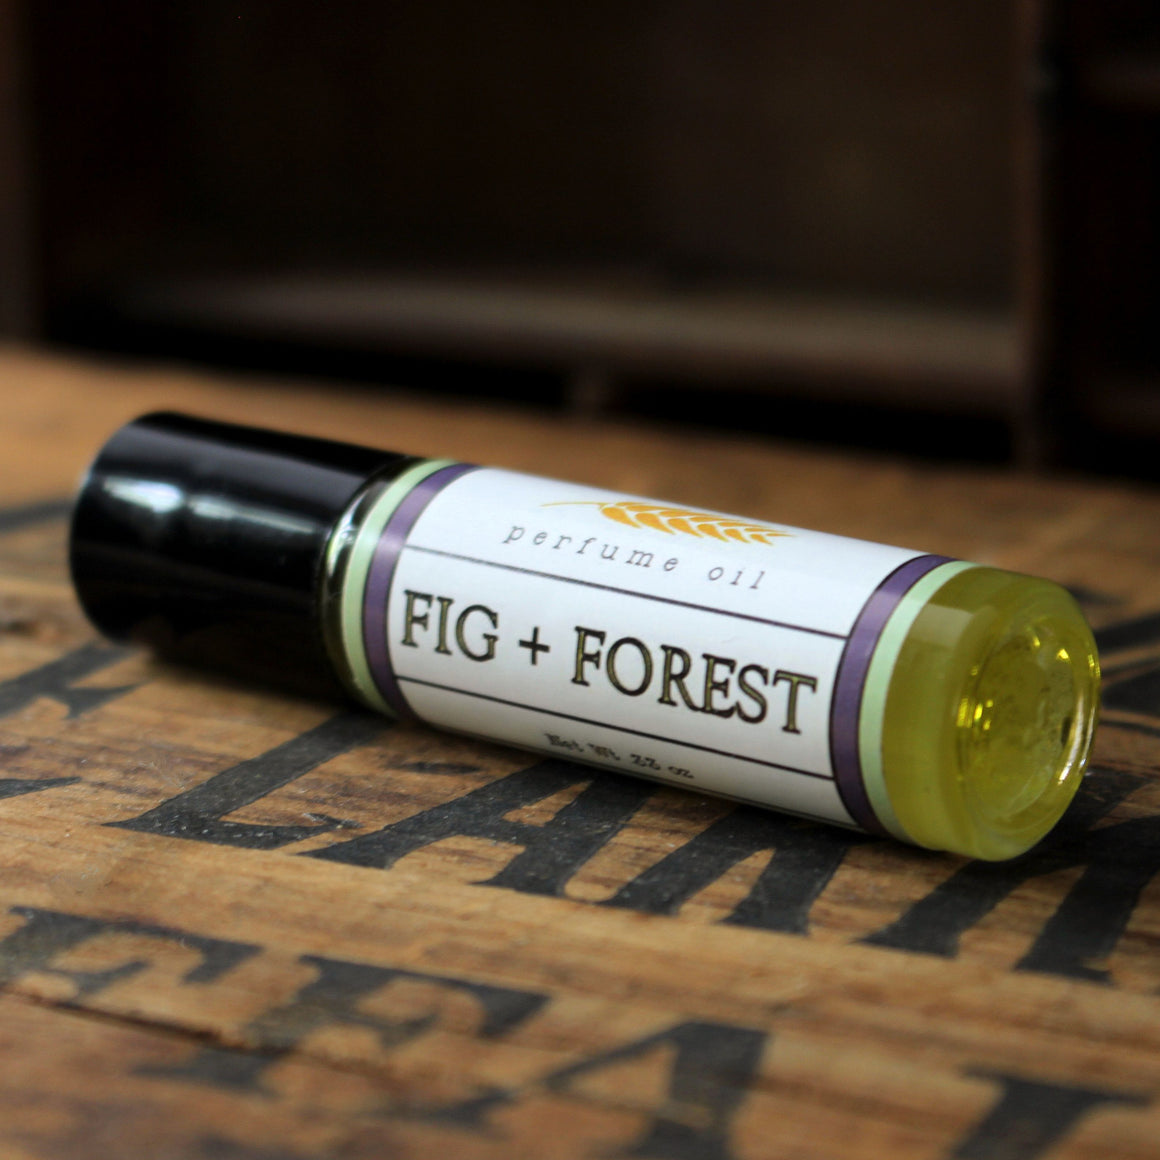 Fig + Forest Perfume Oil